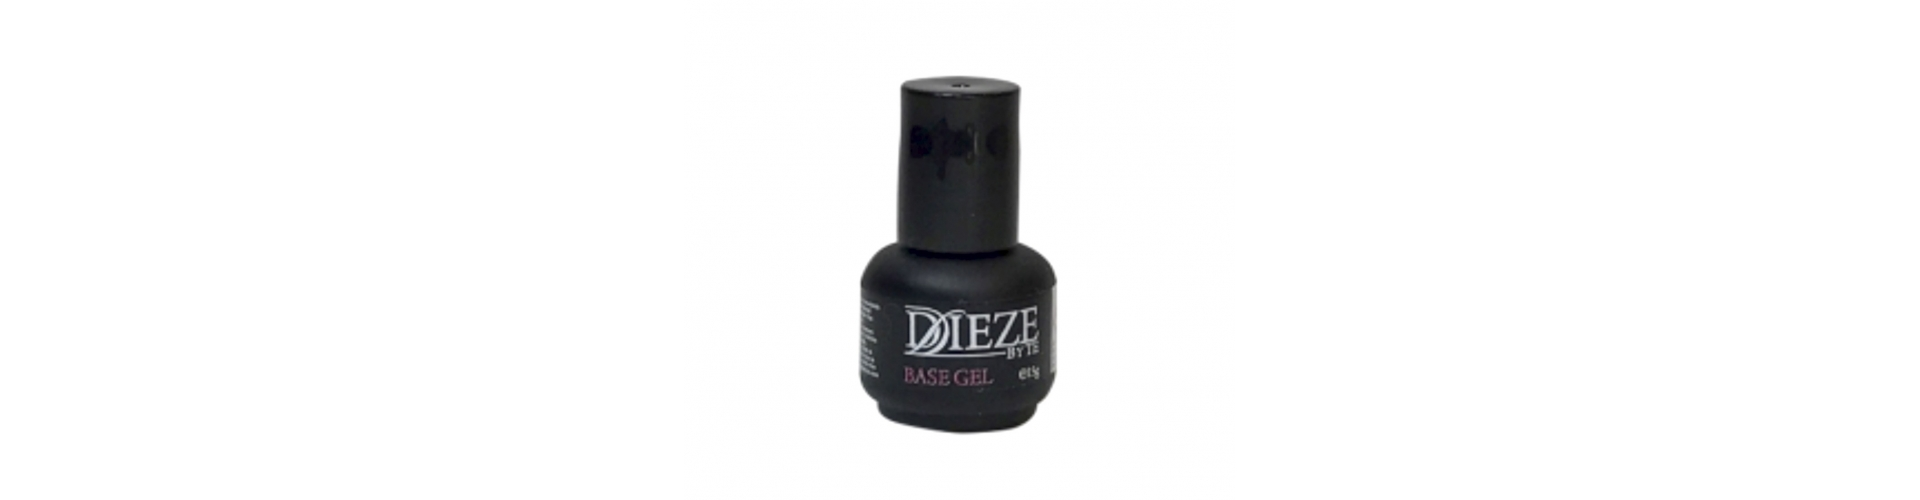 Base gel to apply to make your fake nails stick better